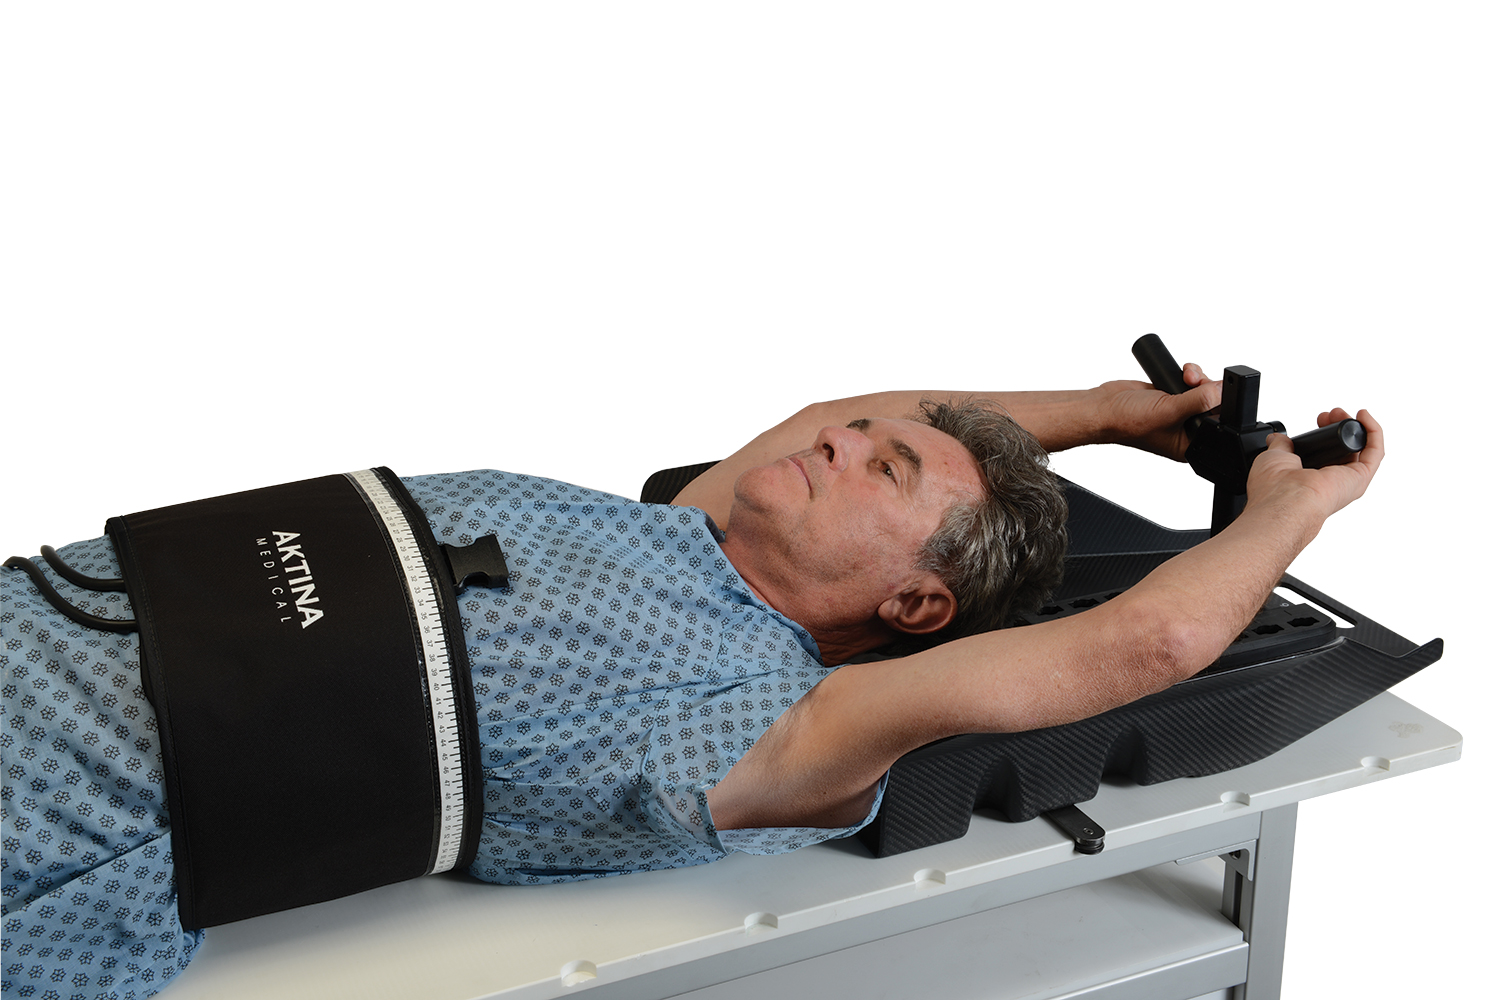 Man lying on SBRT board with ArmCradle 4 Y handle and compression belt